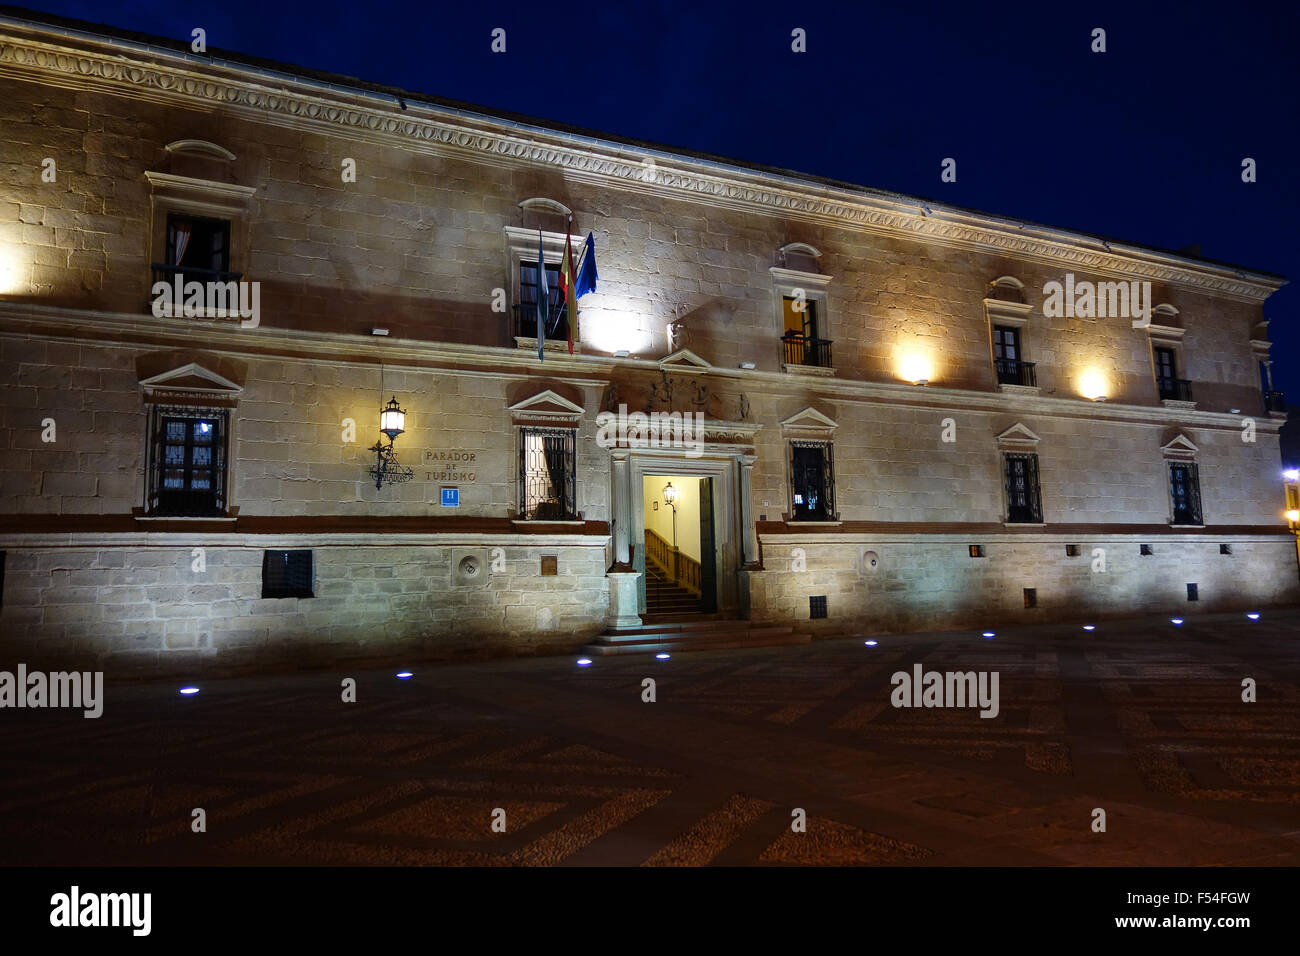 The Parador de Turismo at Ubeda in Andalusia Spain - Stock Image